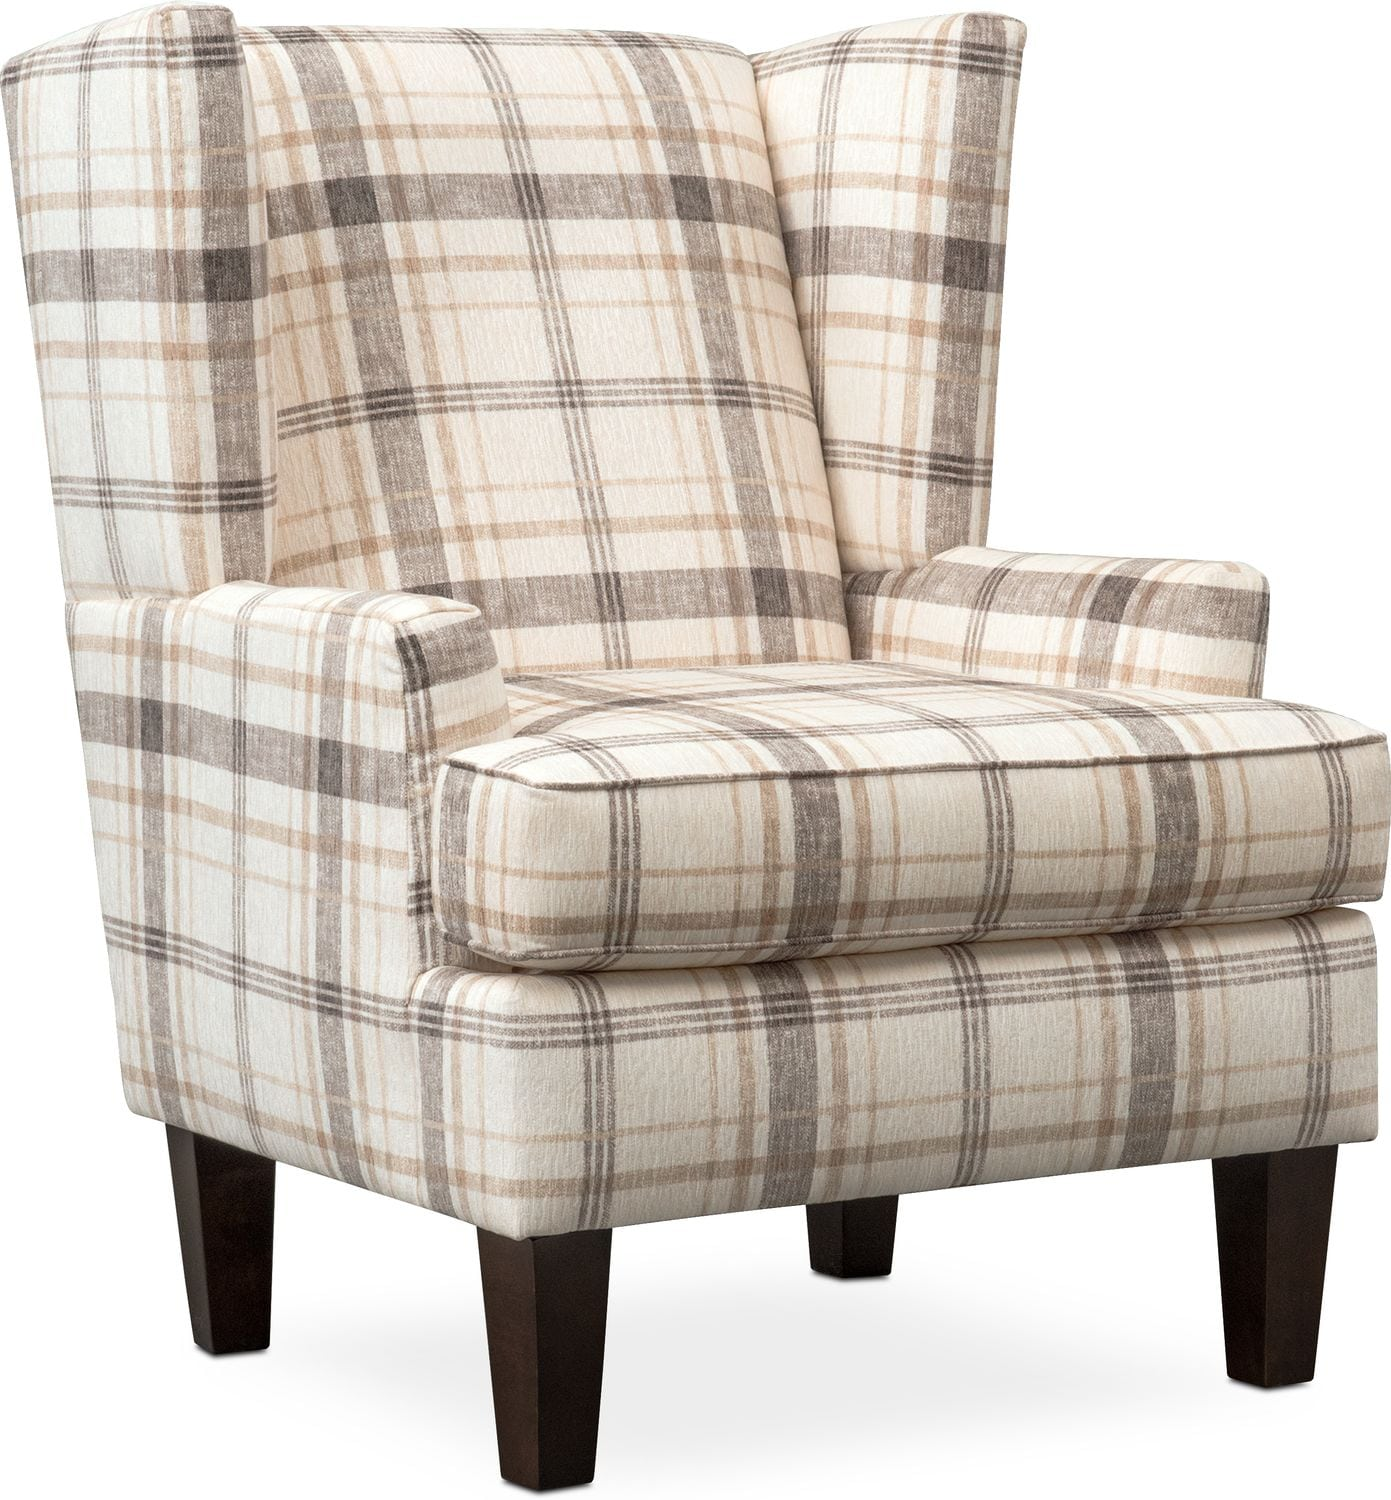 Delicieux Living Room Furniture   Rowan Accent Chair   Plaid